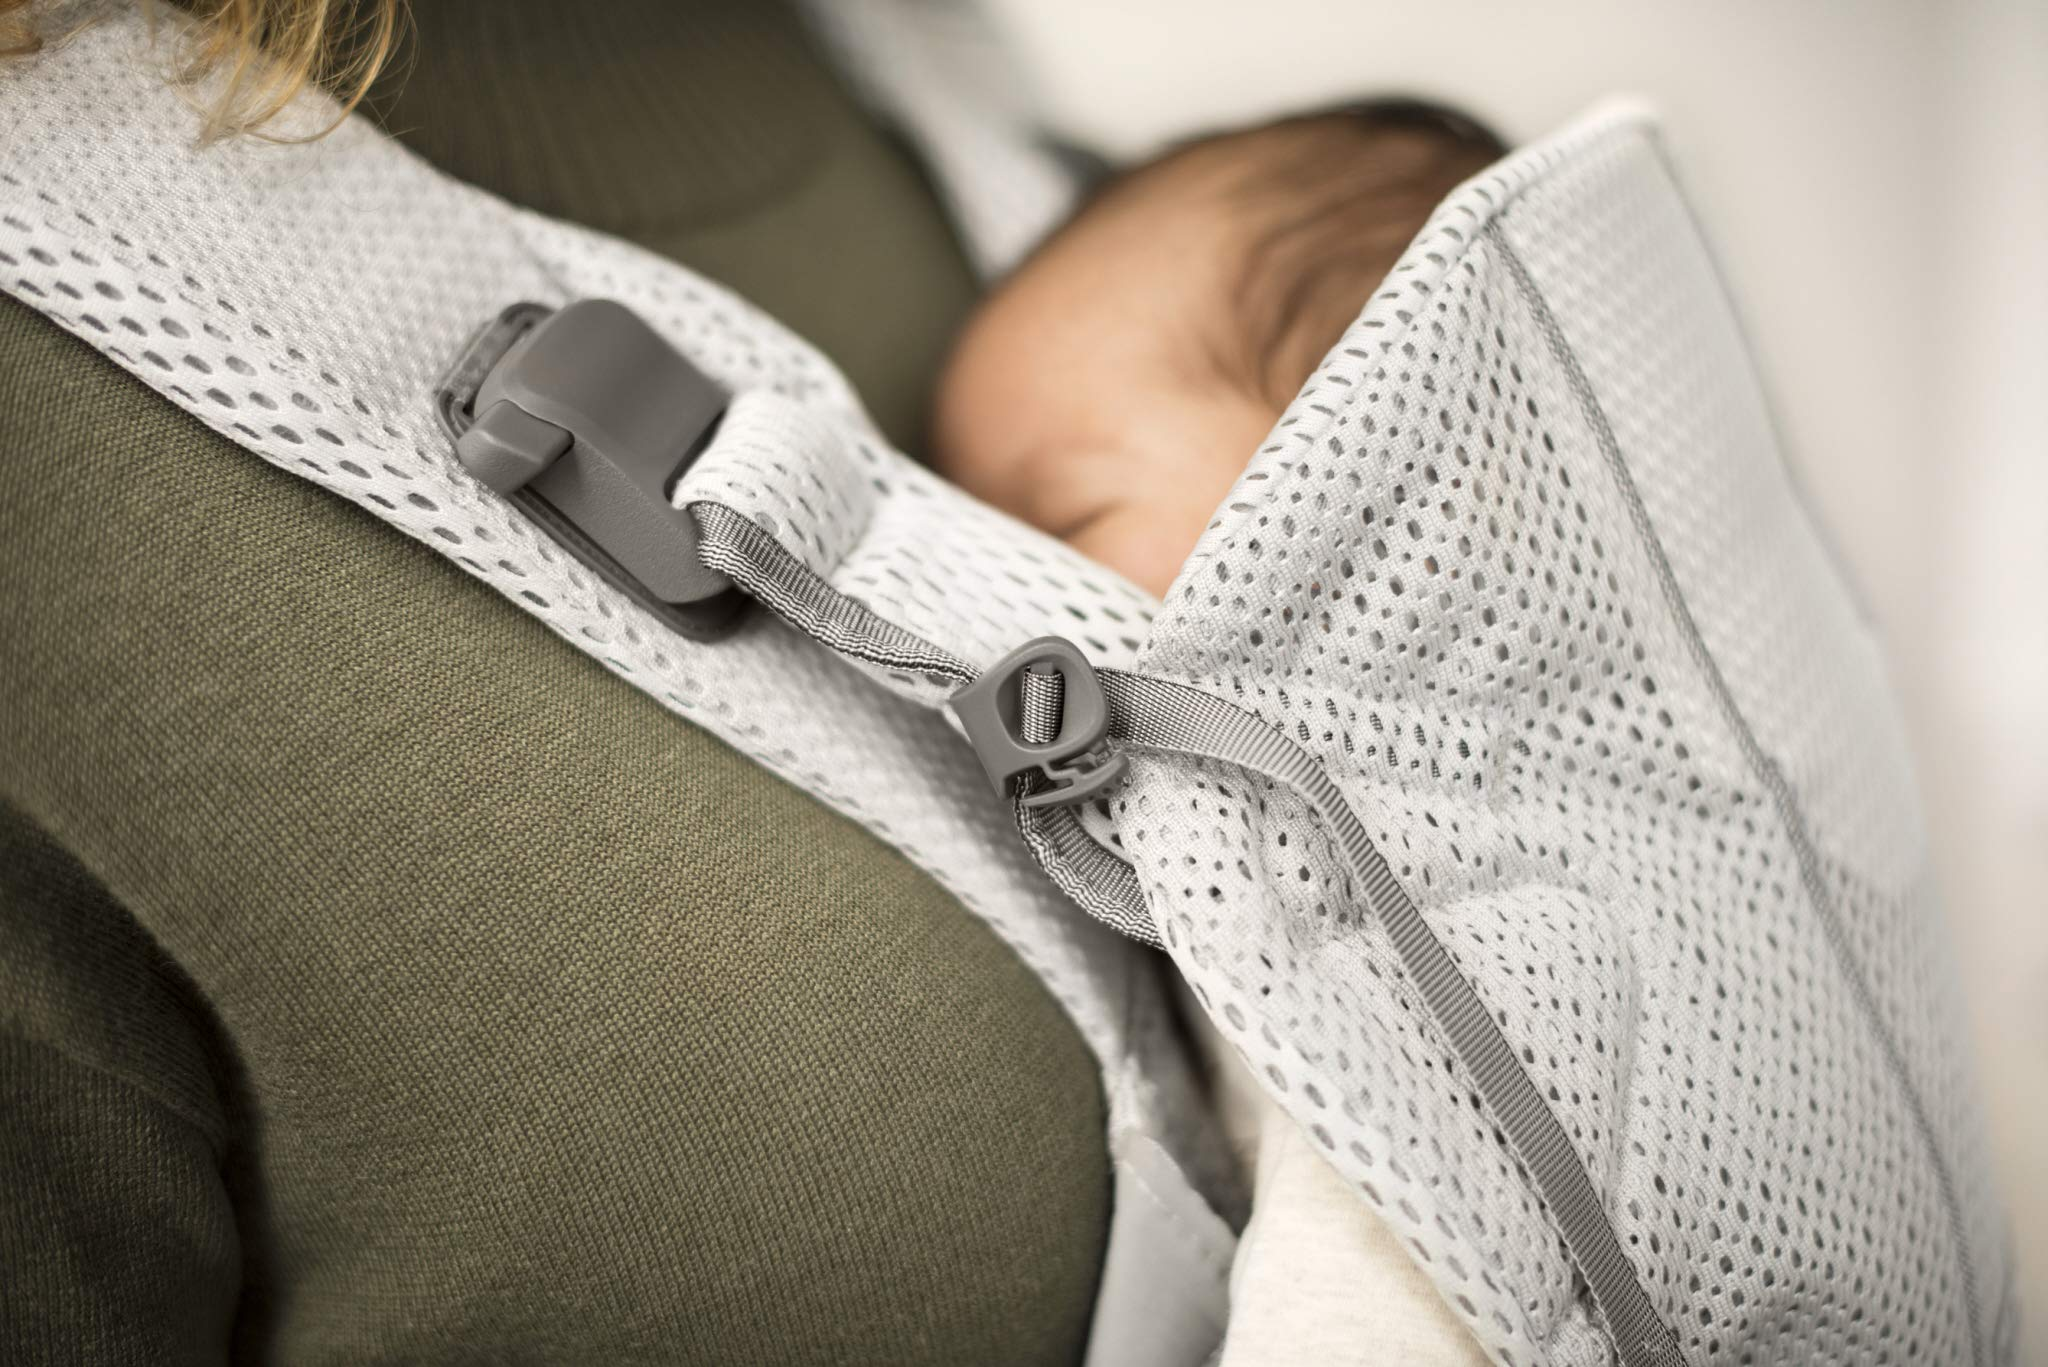 BABYBJÖRN Baby Carrier One Air, 3D Mesh, Silver, 2018 Edition Baby Bjorn The latest version (2018) with soft and breathable mesh that dries quickly Ergonomic baby carrier with excellent support 4 carrying positions: facing in (two height positions), facing out or on your back 6